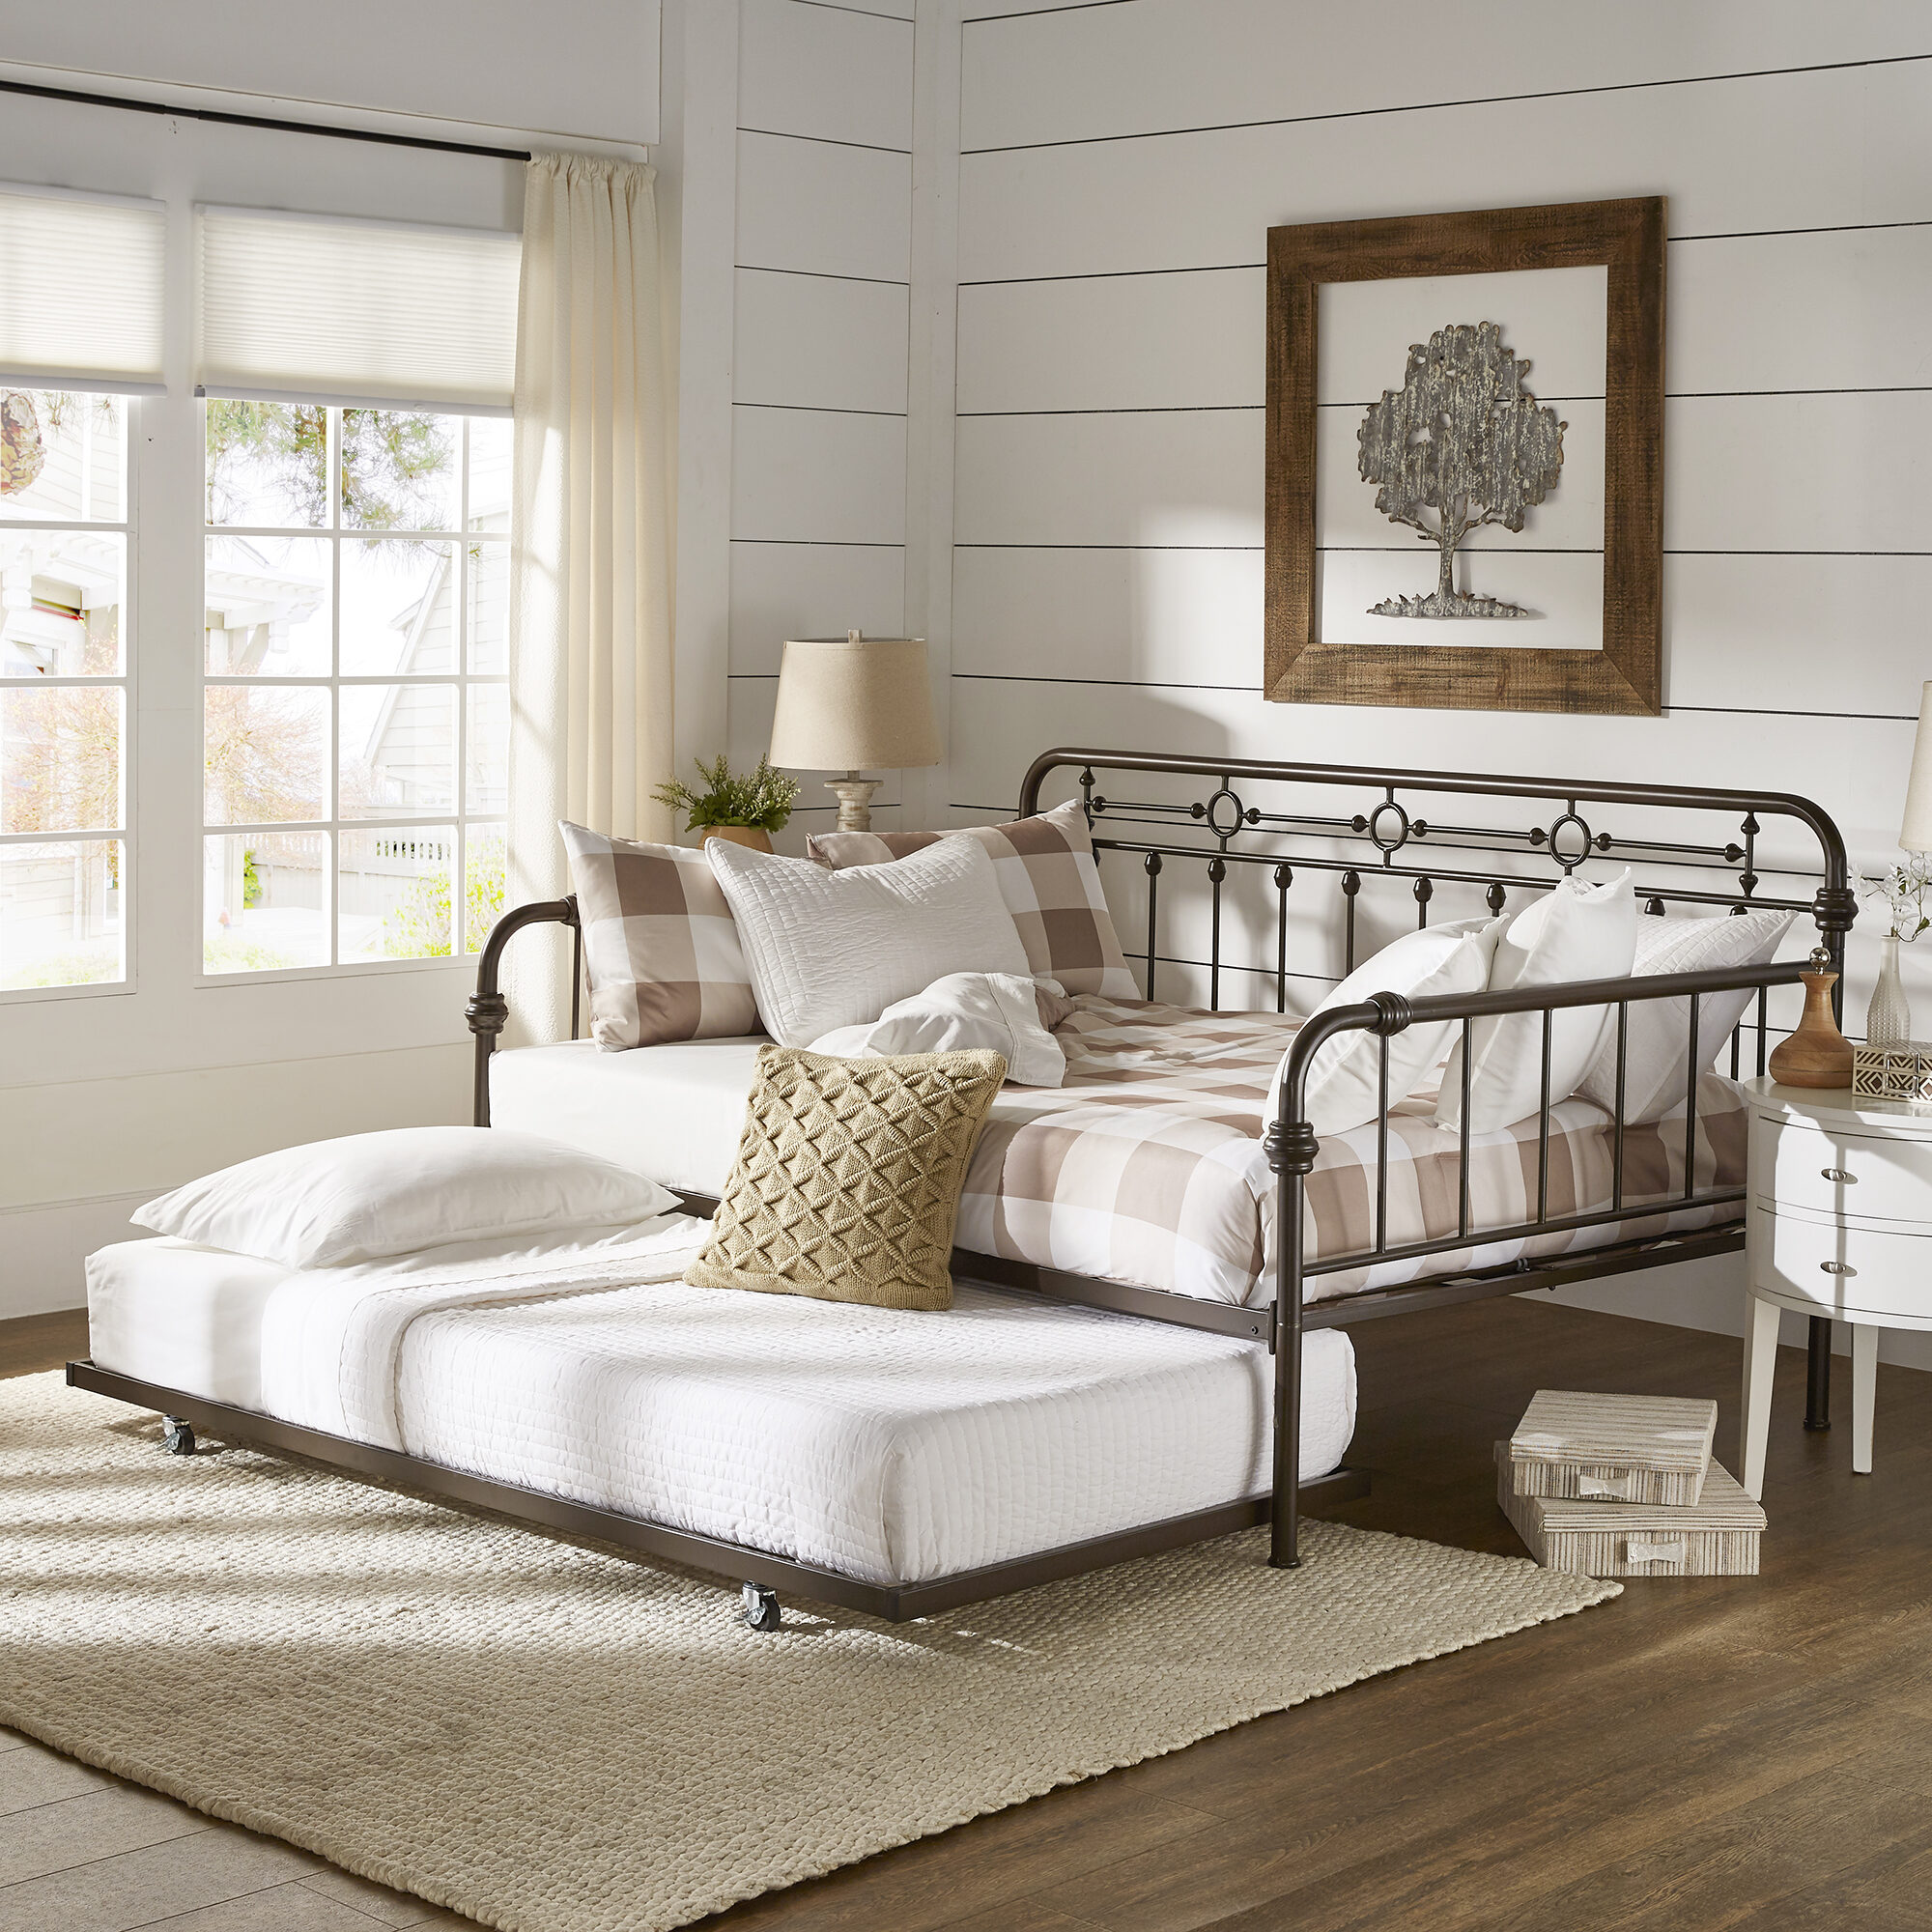 One of our kids' bedroom ideas is to use a daybed. A daybed, like this brown metal one, is versatile, as it can be used as a sofa or as a bed. This one pictured also has a trundle bed underneath, great for overnight guests.